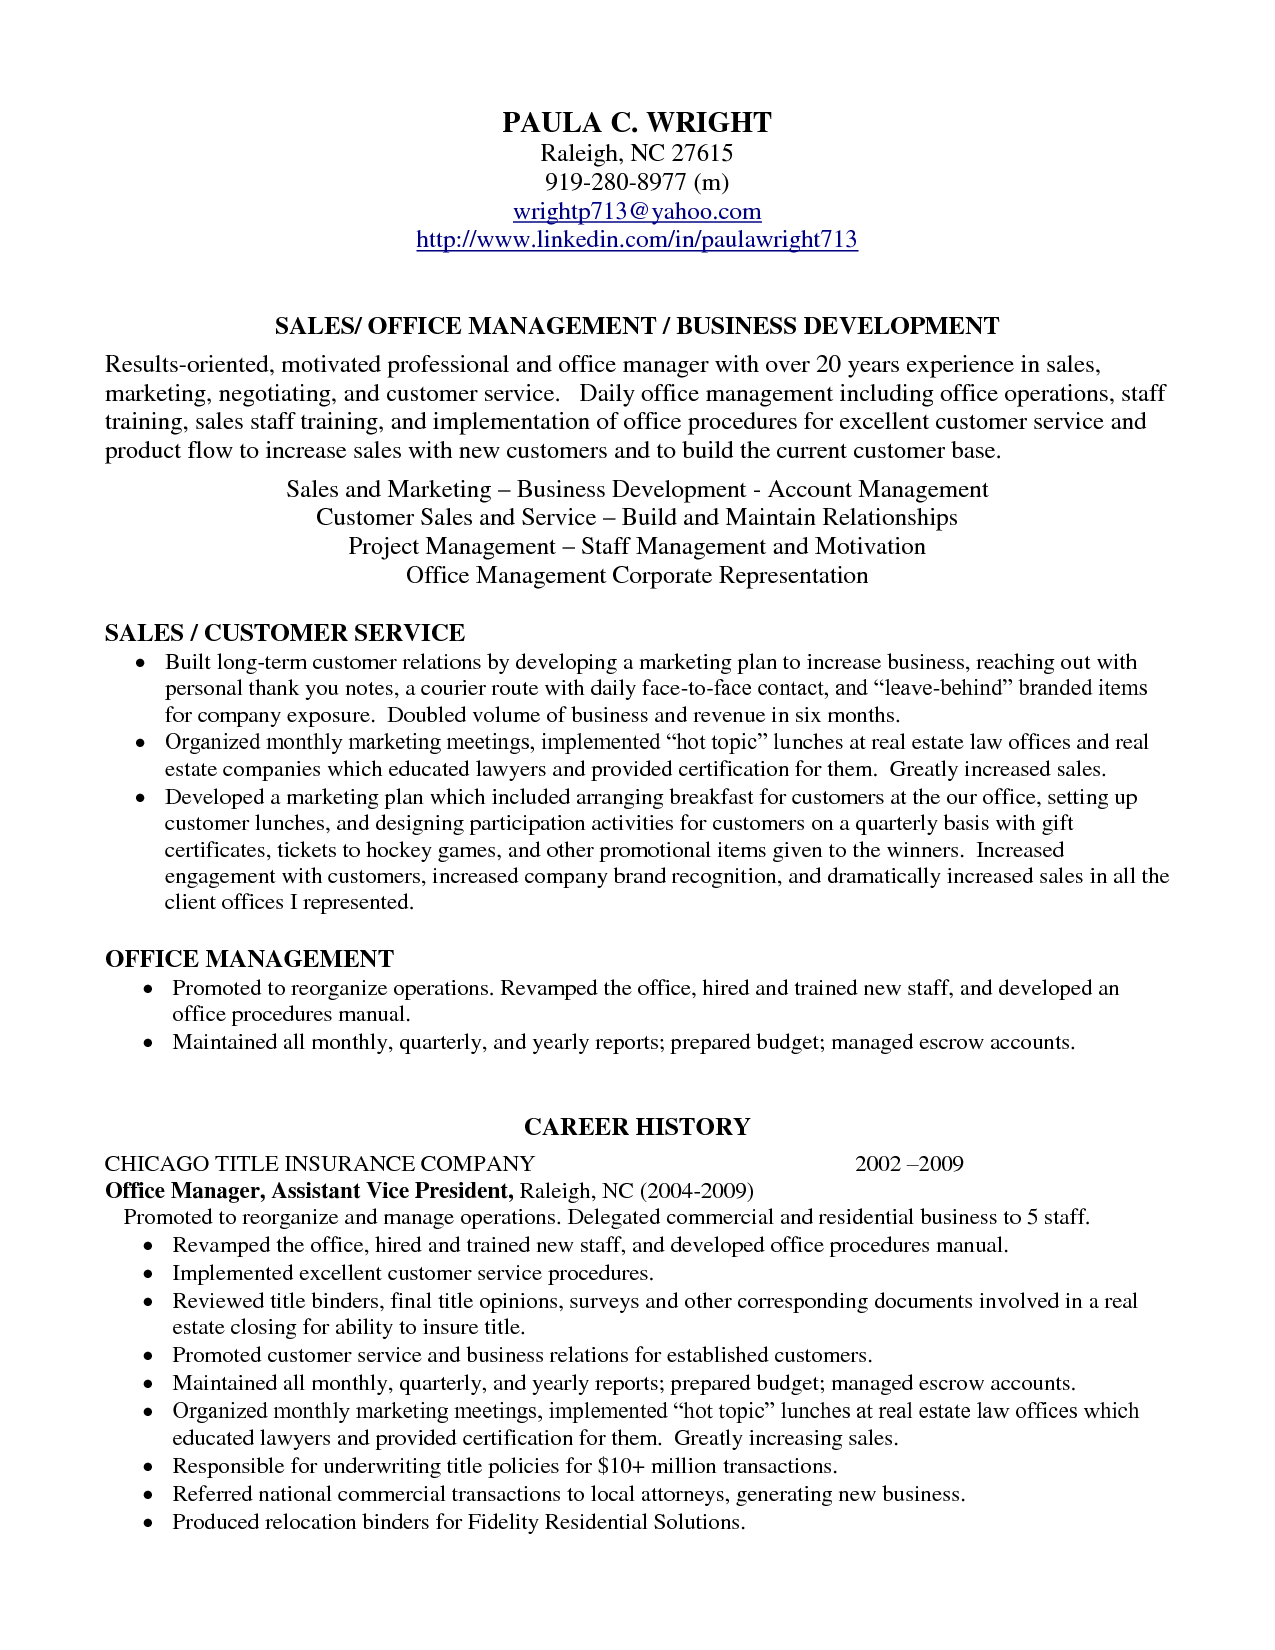 Business Resume Examples Professional Profile Resume Examplesresume Professional Profile